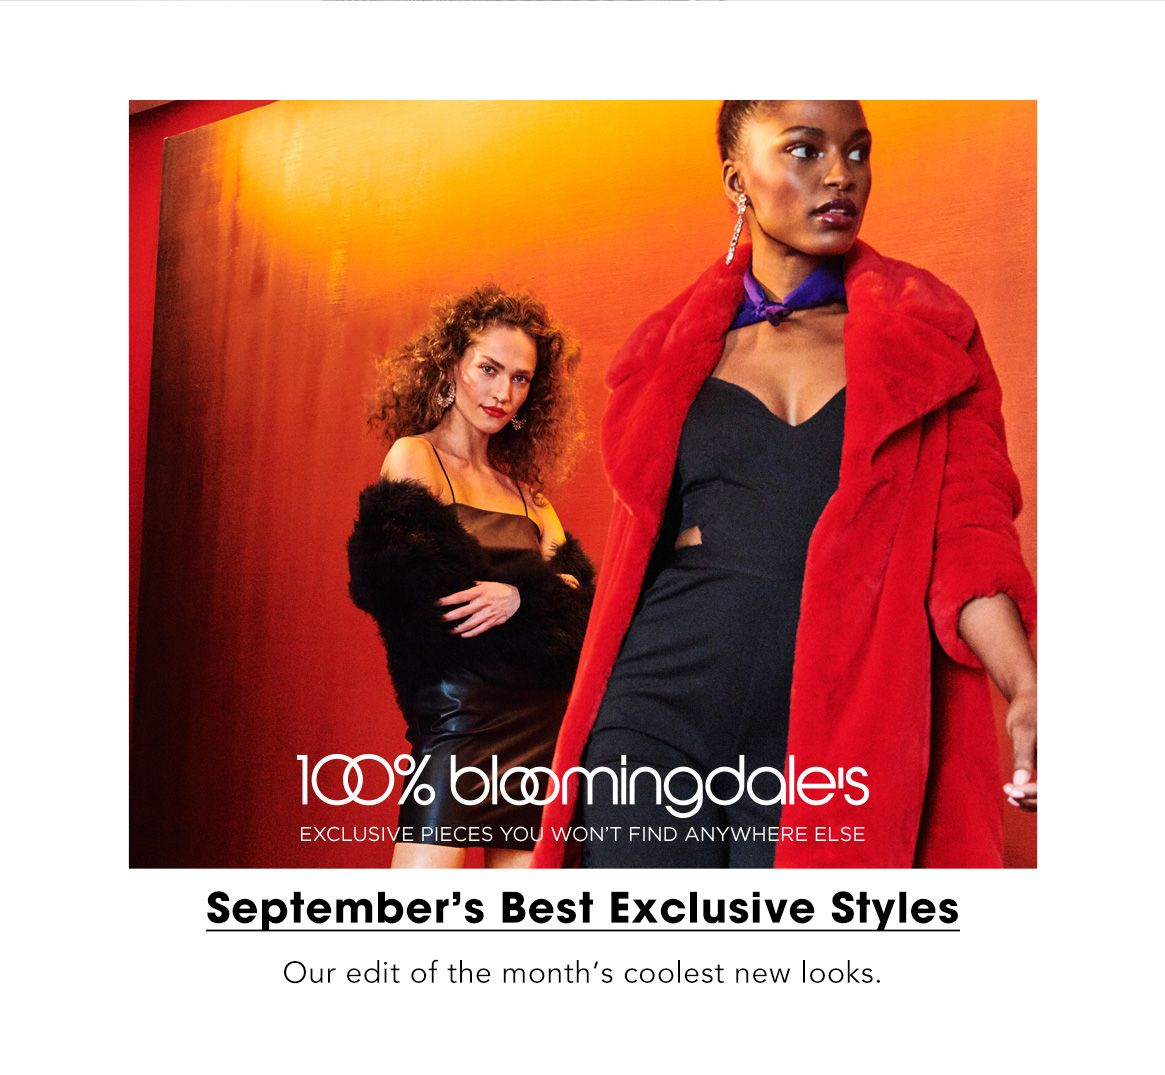 One hundred percent Bloomingdale's. Exclusive pieces you won't find anywhere else. August's best exclusive styles. Our edit of the month's coolest new looks.$$fashion packed life